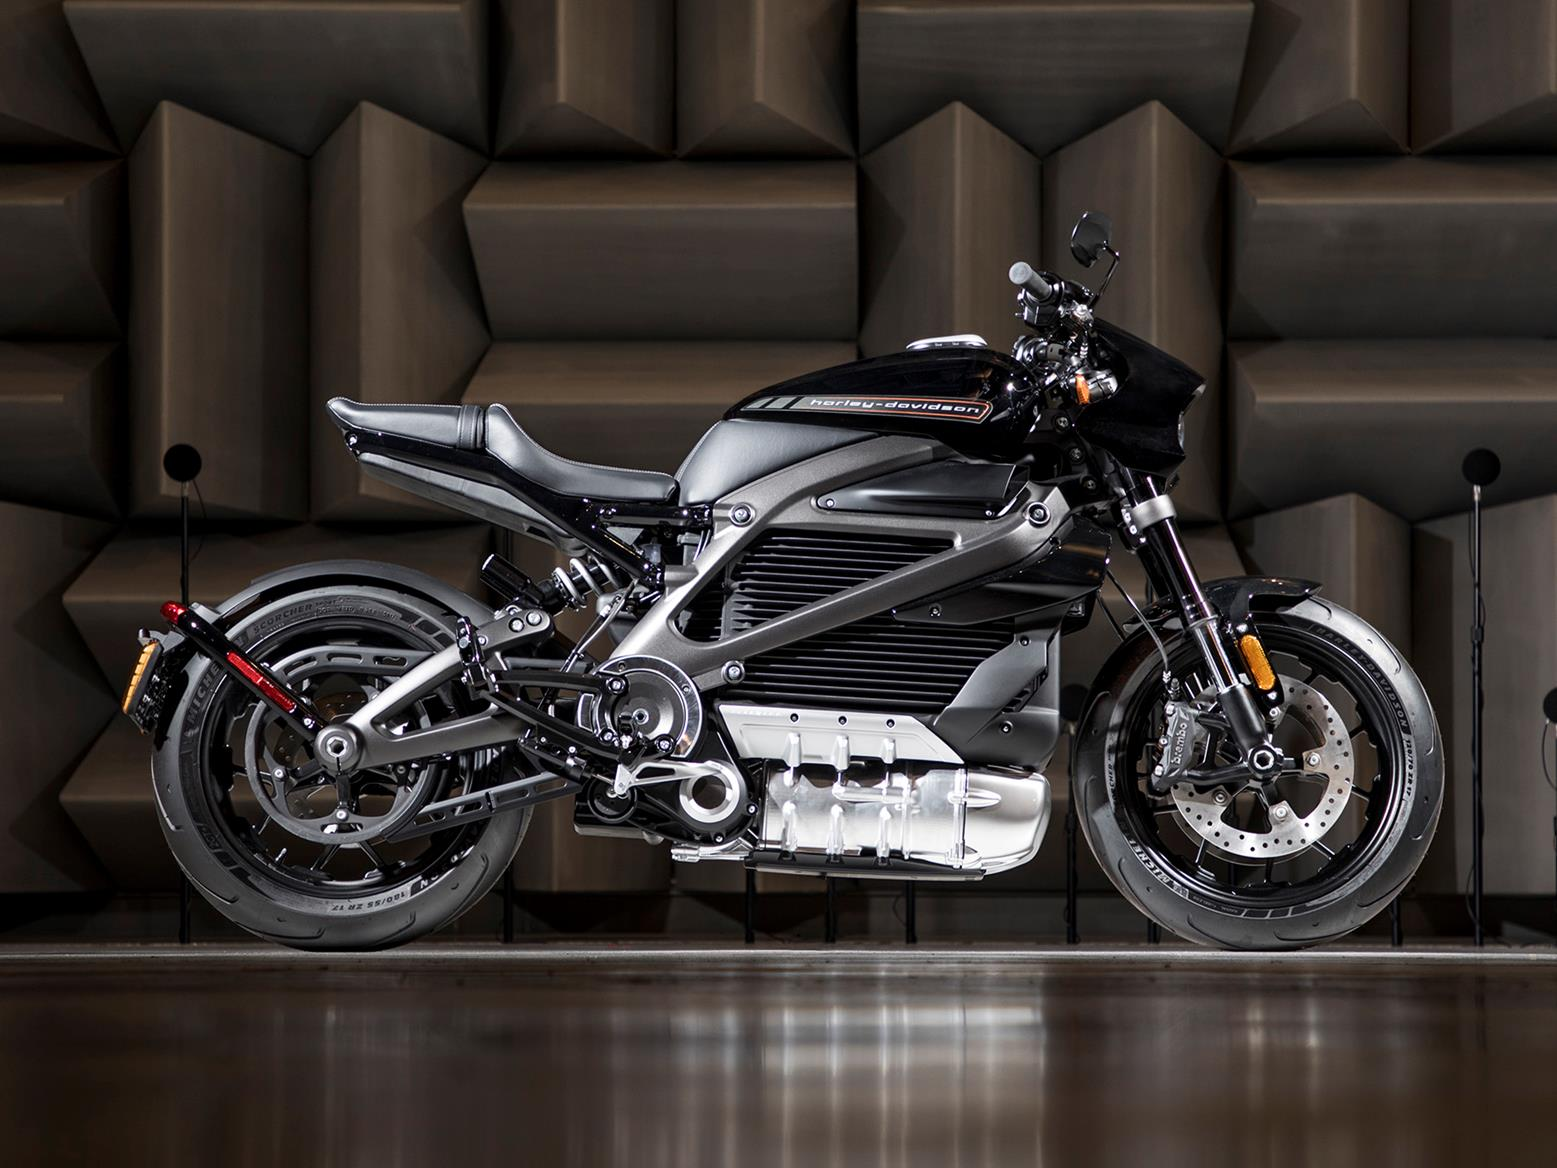 The Harley-Davidson LiveWire production bike